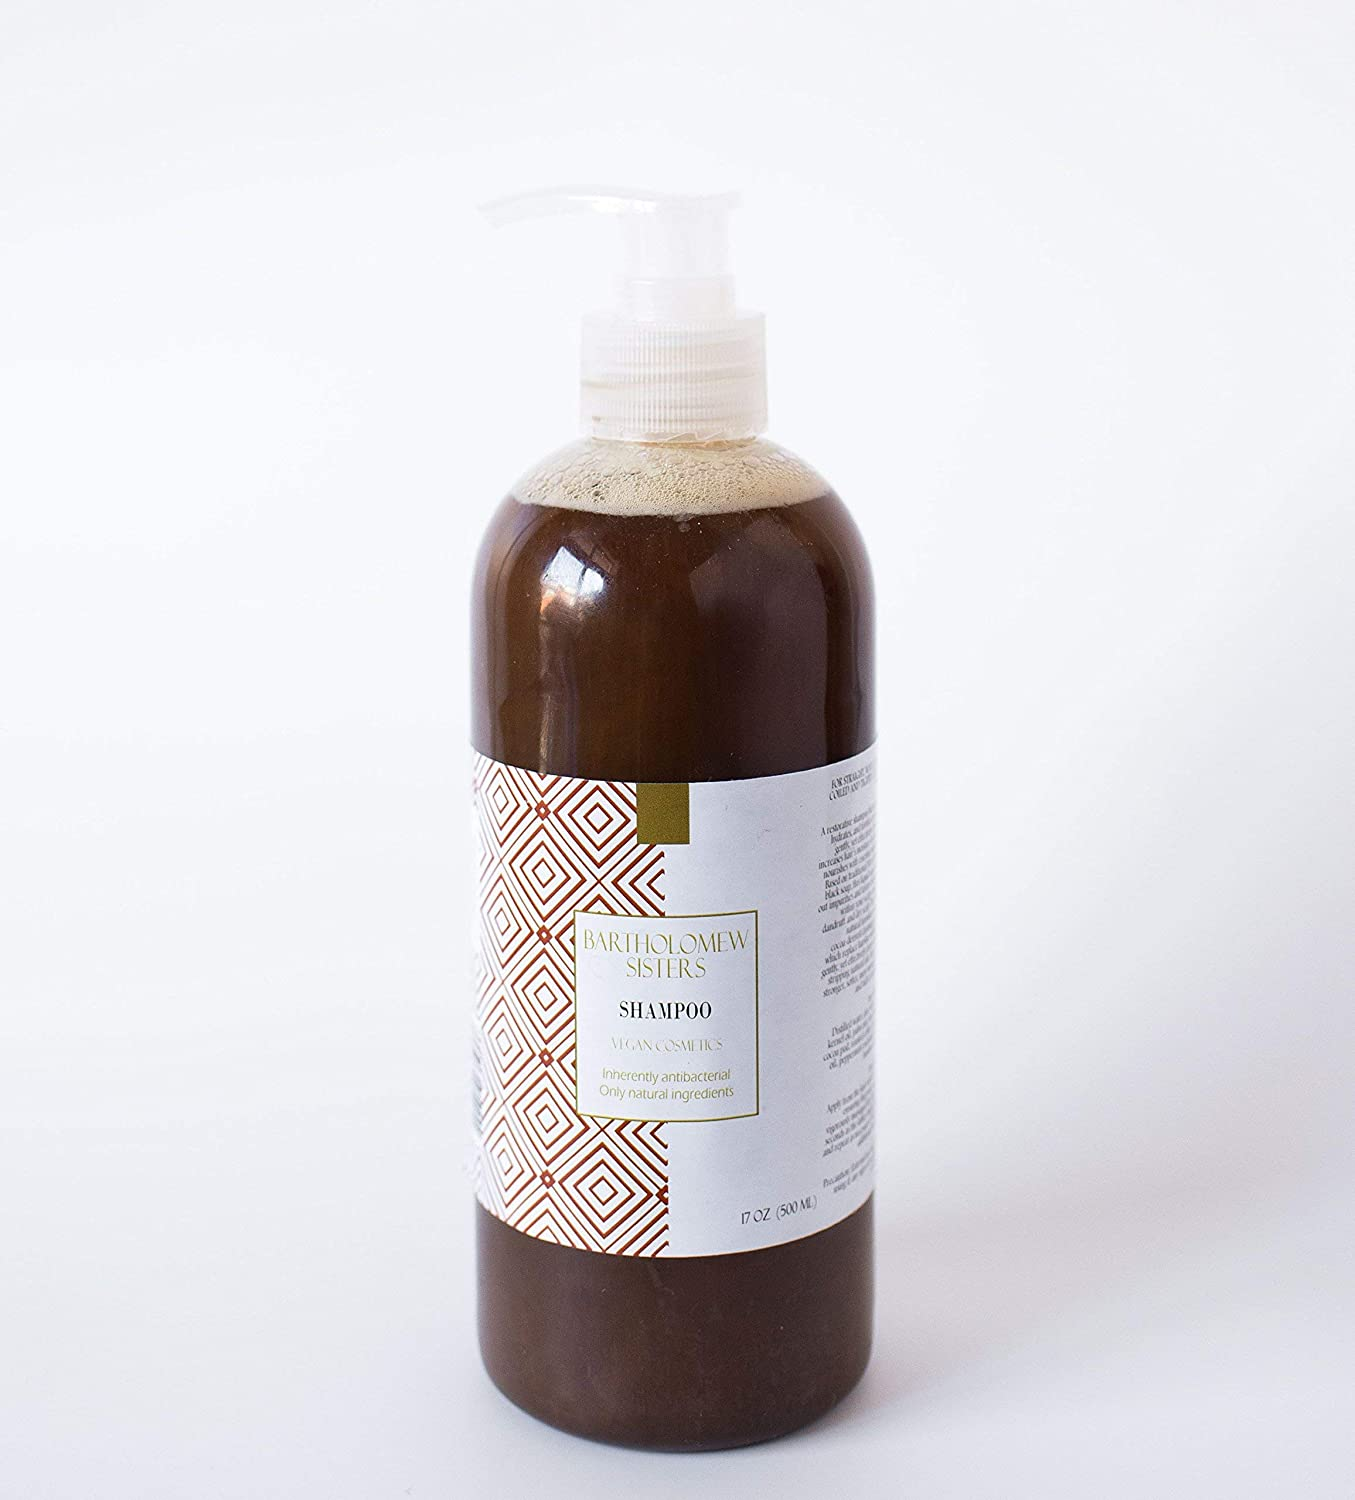 Handmade Natural Vegan Shampoo - Black Soap with Bamboo Extract, Coffee and Peppermint Essential Oil, 16 oz